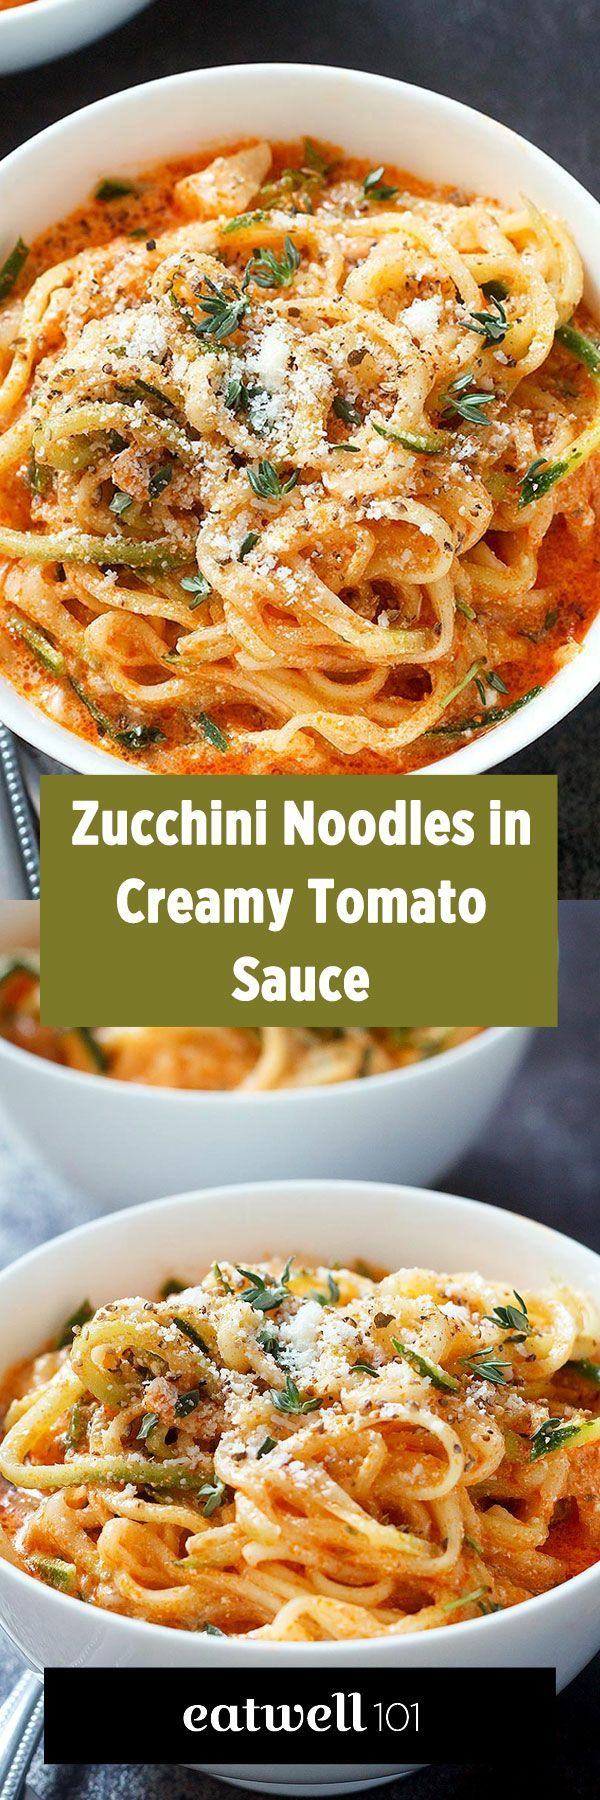 Try these zucchini noodles for a low carb comfort dinner that will be on your table in less than 20 minutes! Zucchini is quickly infused in a creamy tomato sauce flavored with onion and garlic...